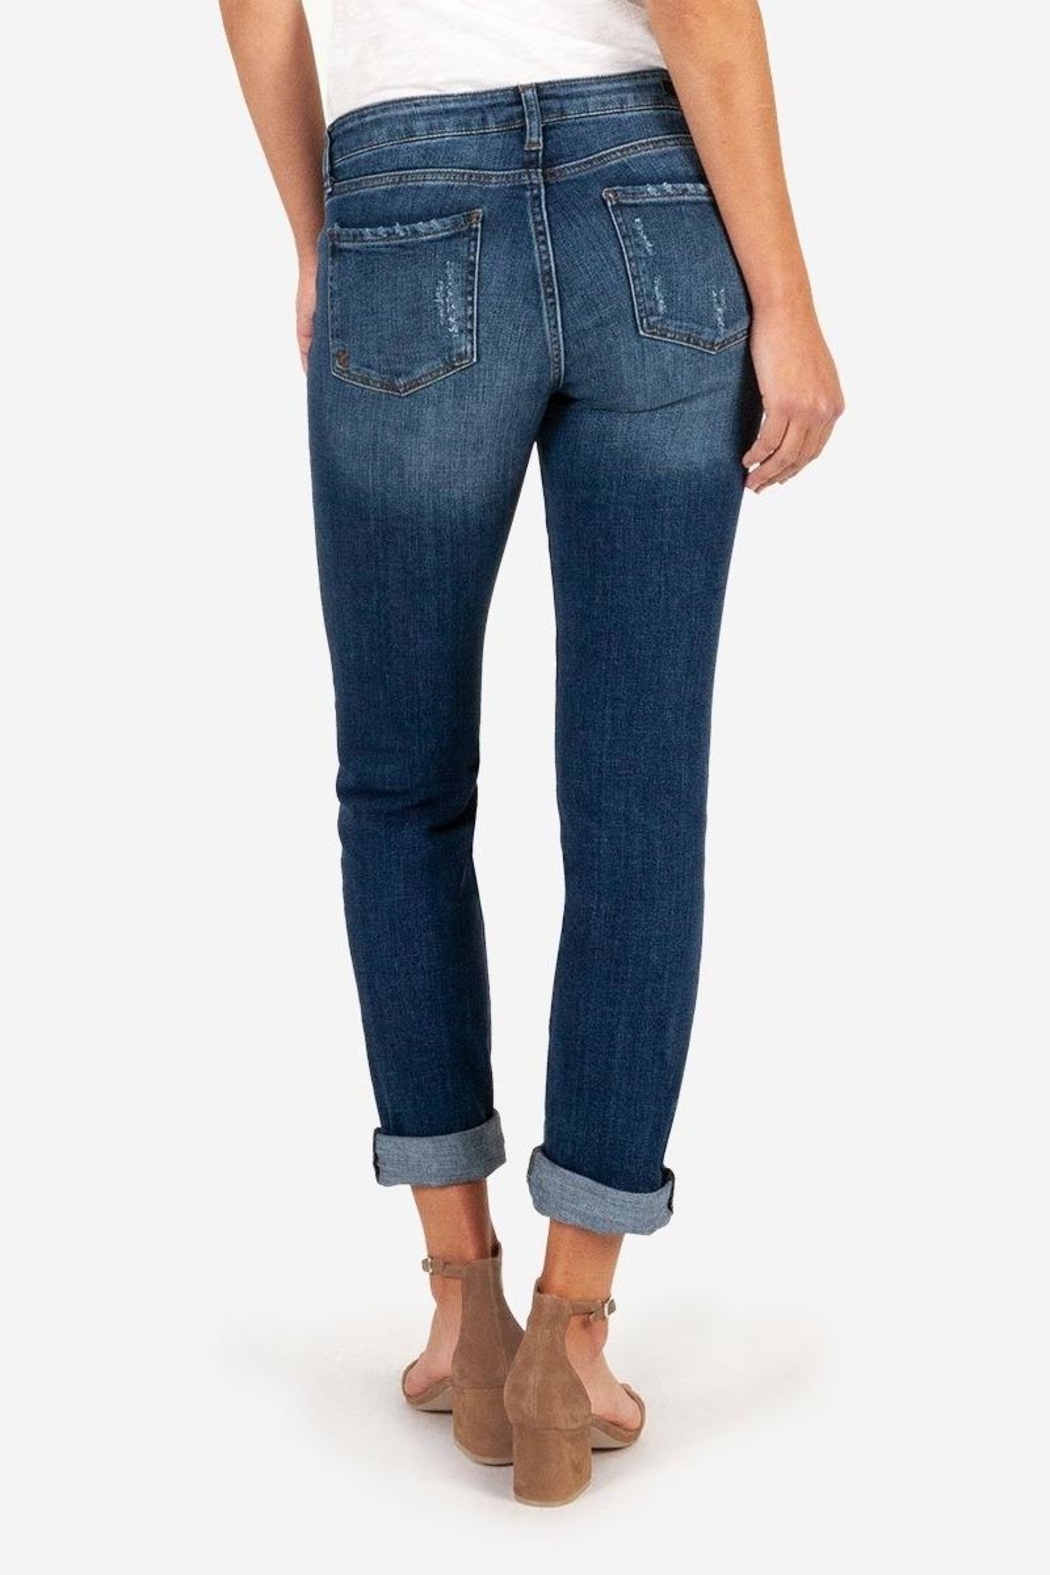 Kut from the Cloth Catherine Boyfriend Jeans - Side Cropped Image